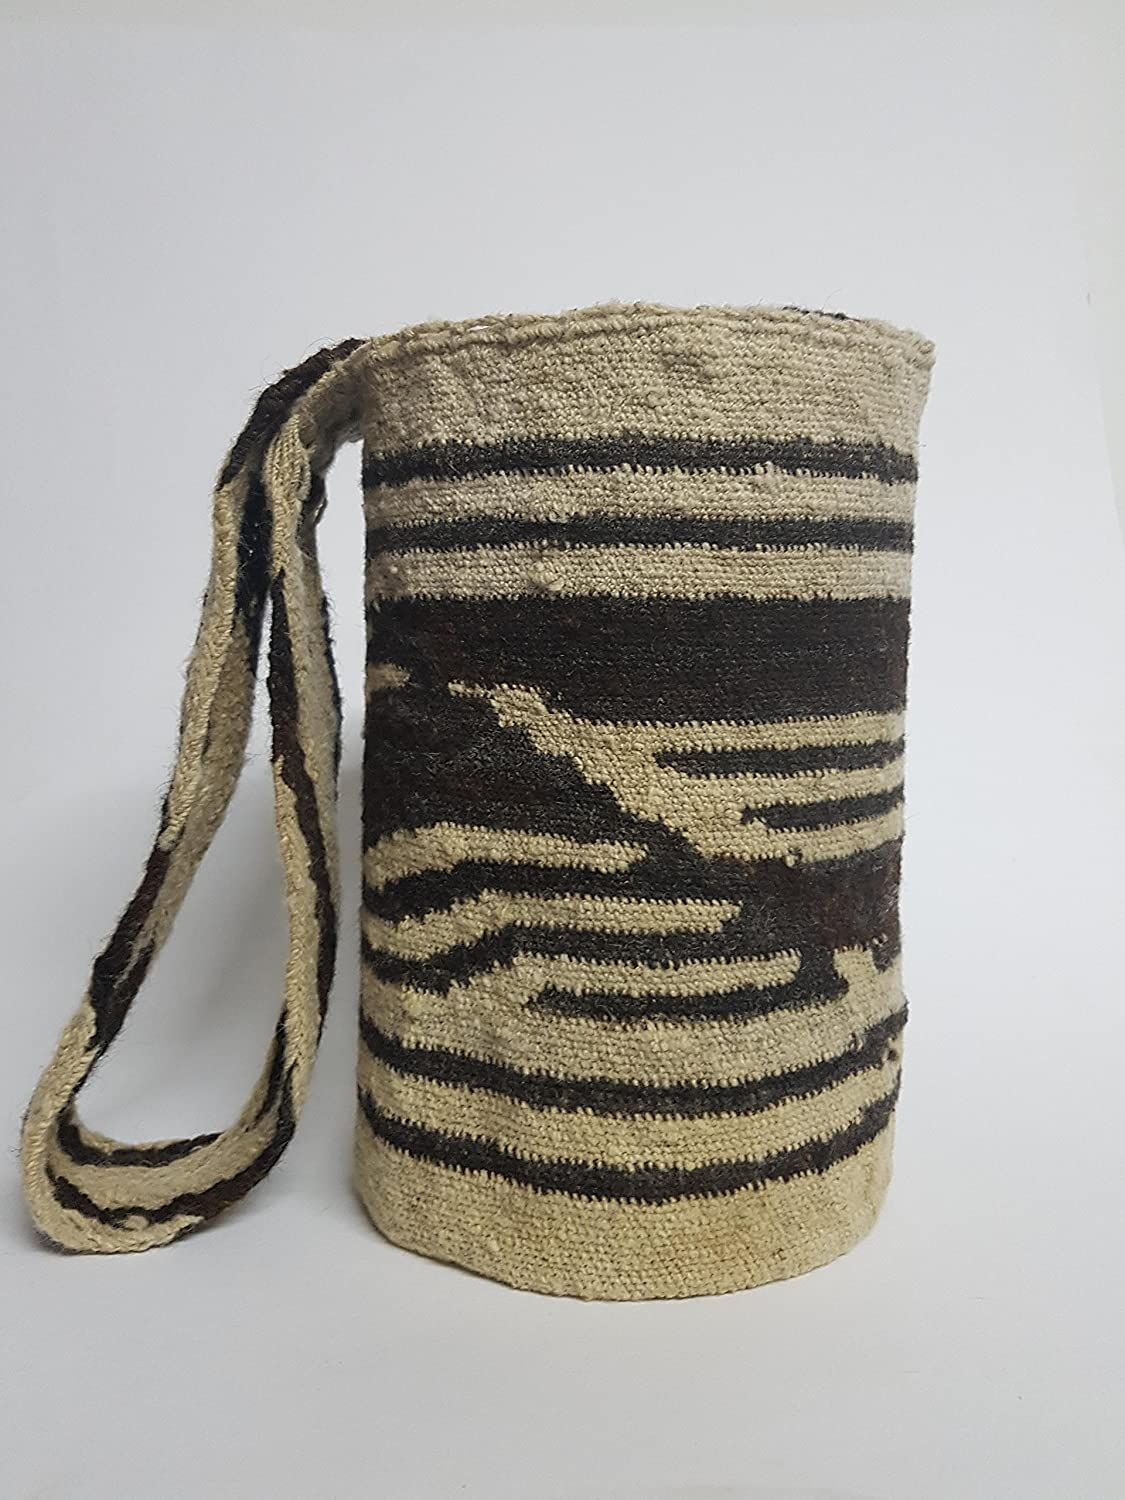 Amazon.com: Real Native Colombian Arhuaco handbag - Colombian mochila - Handmade and woven from sheep wool by women 291: Handmade